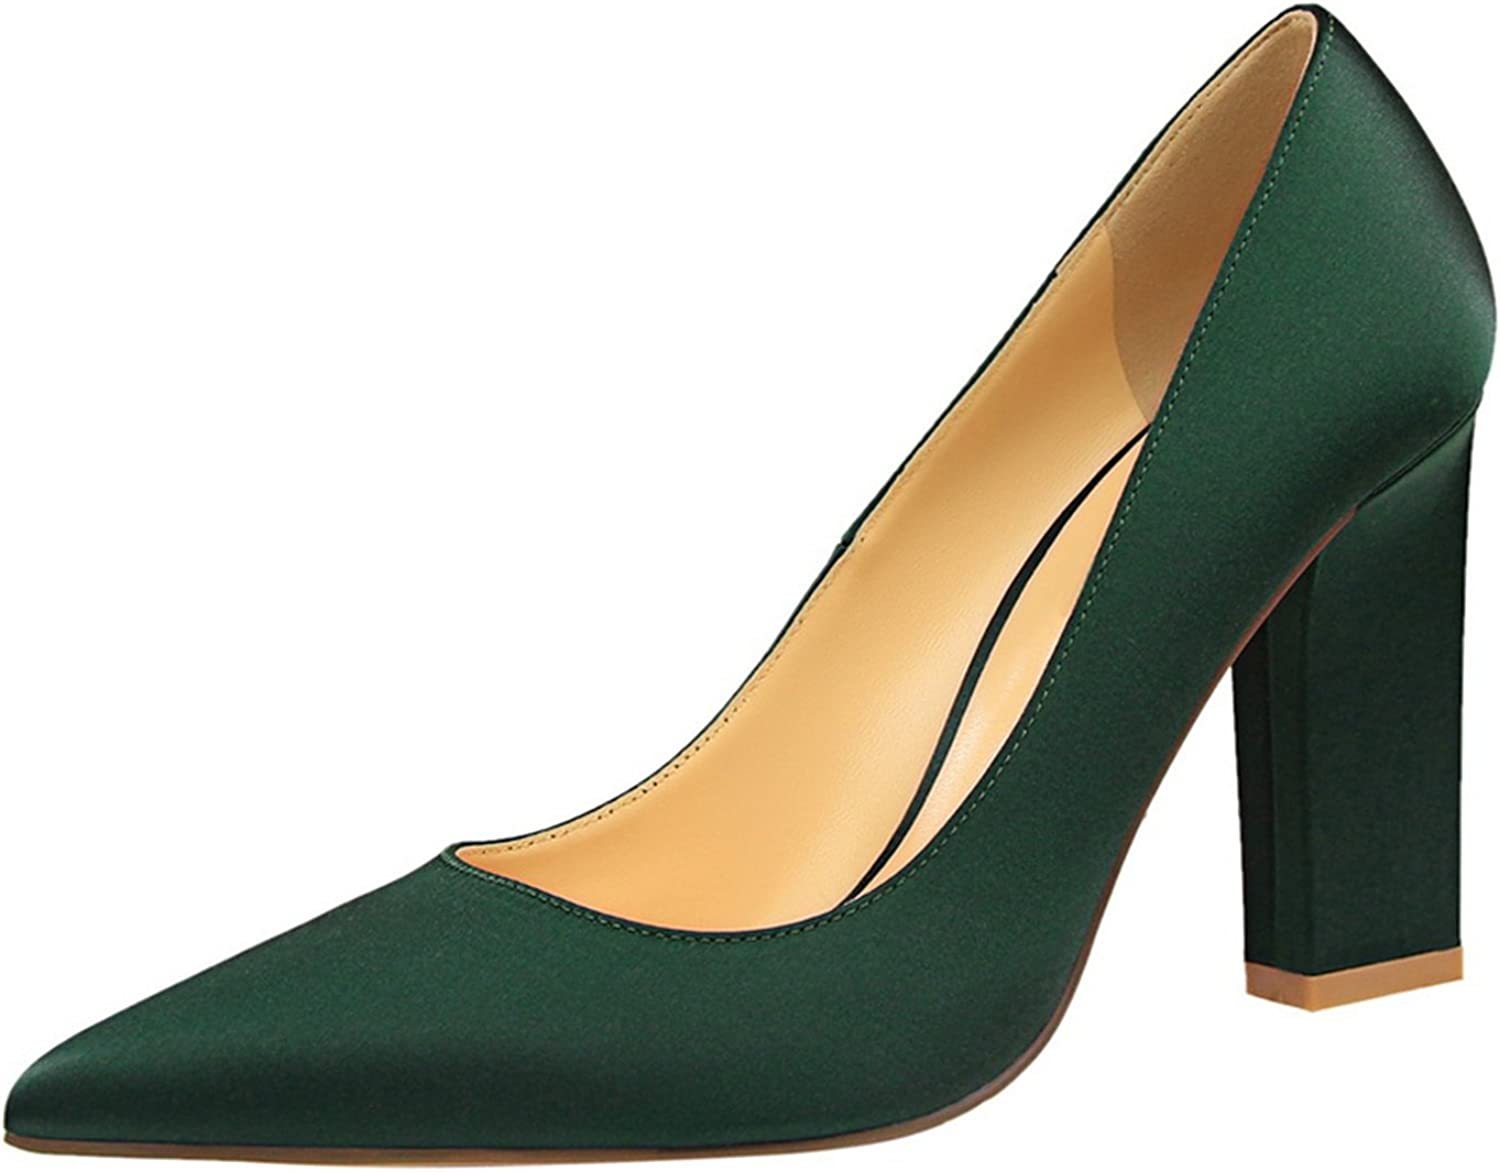 Carlos Foushee shoes Brand Women's Sexy Square Heel Pumps Pointed Toe Thick Heel High Heels Wedding shoes Woman Heels Valentine Pumps